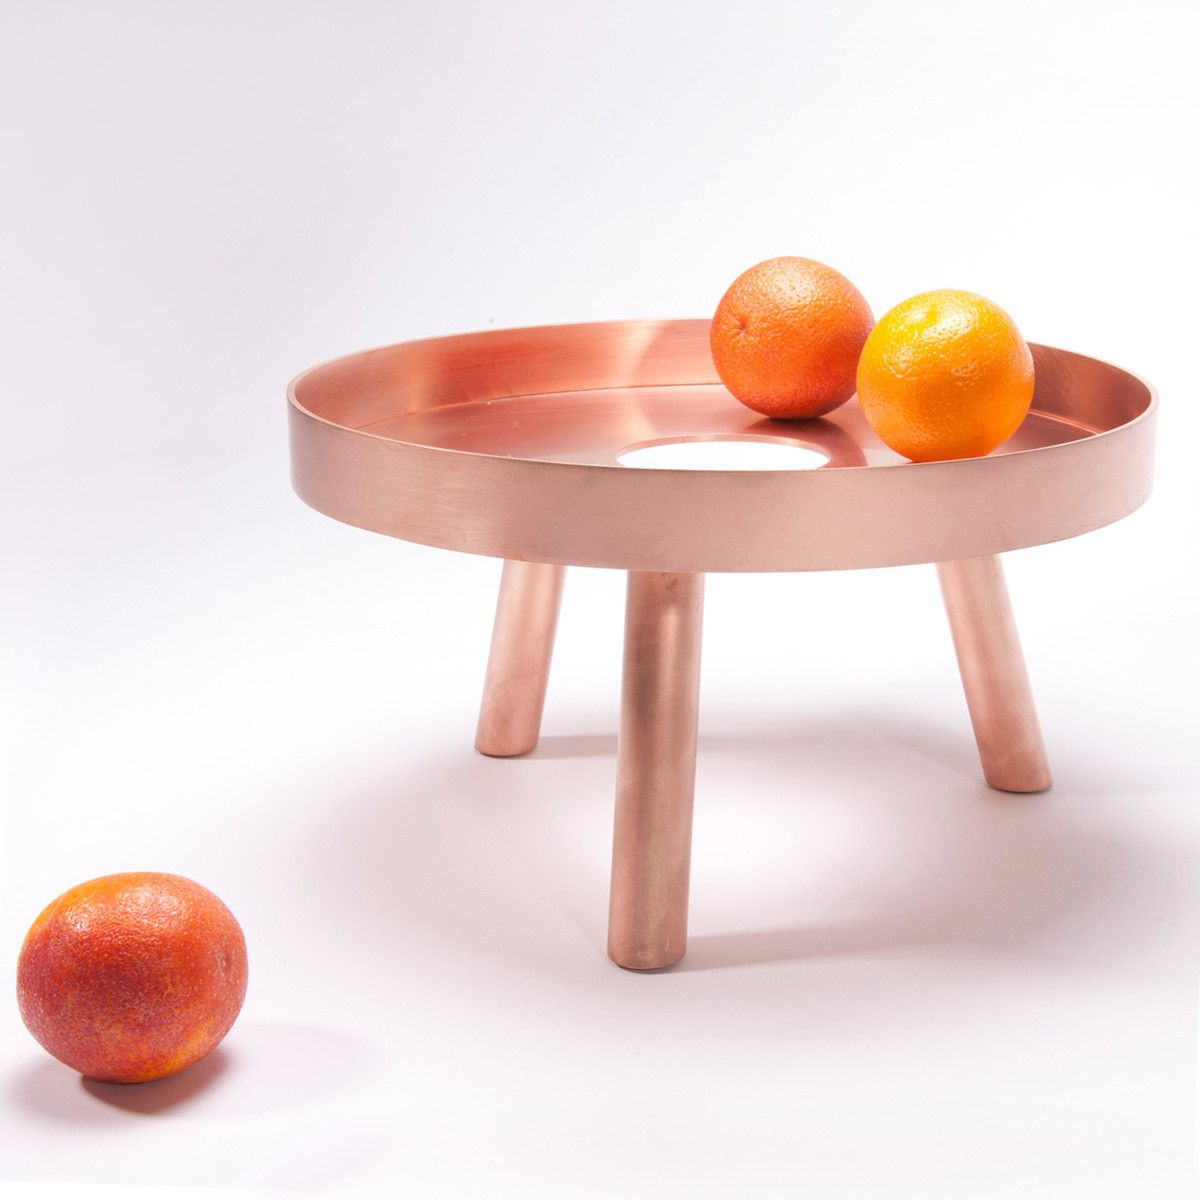 Lift Serving Tray by fferrone design. Brushed copper, made in USA, 12x12x7. $360